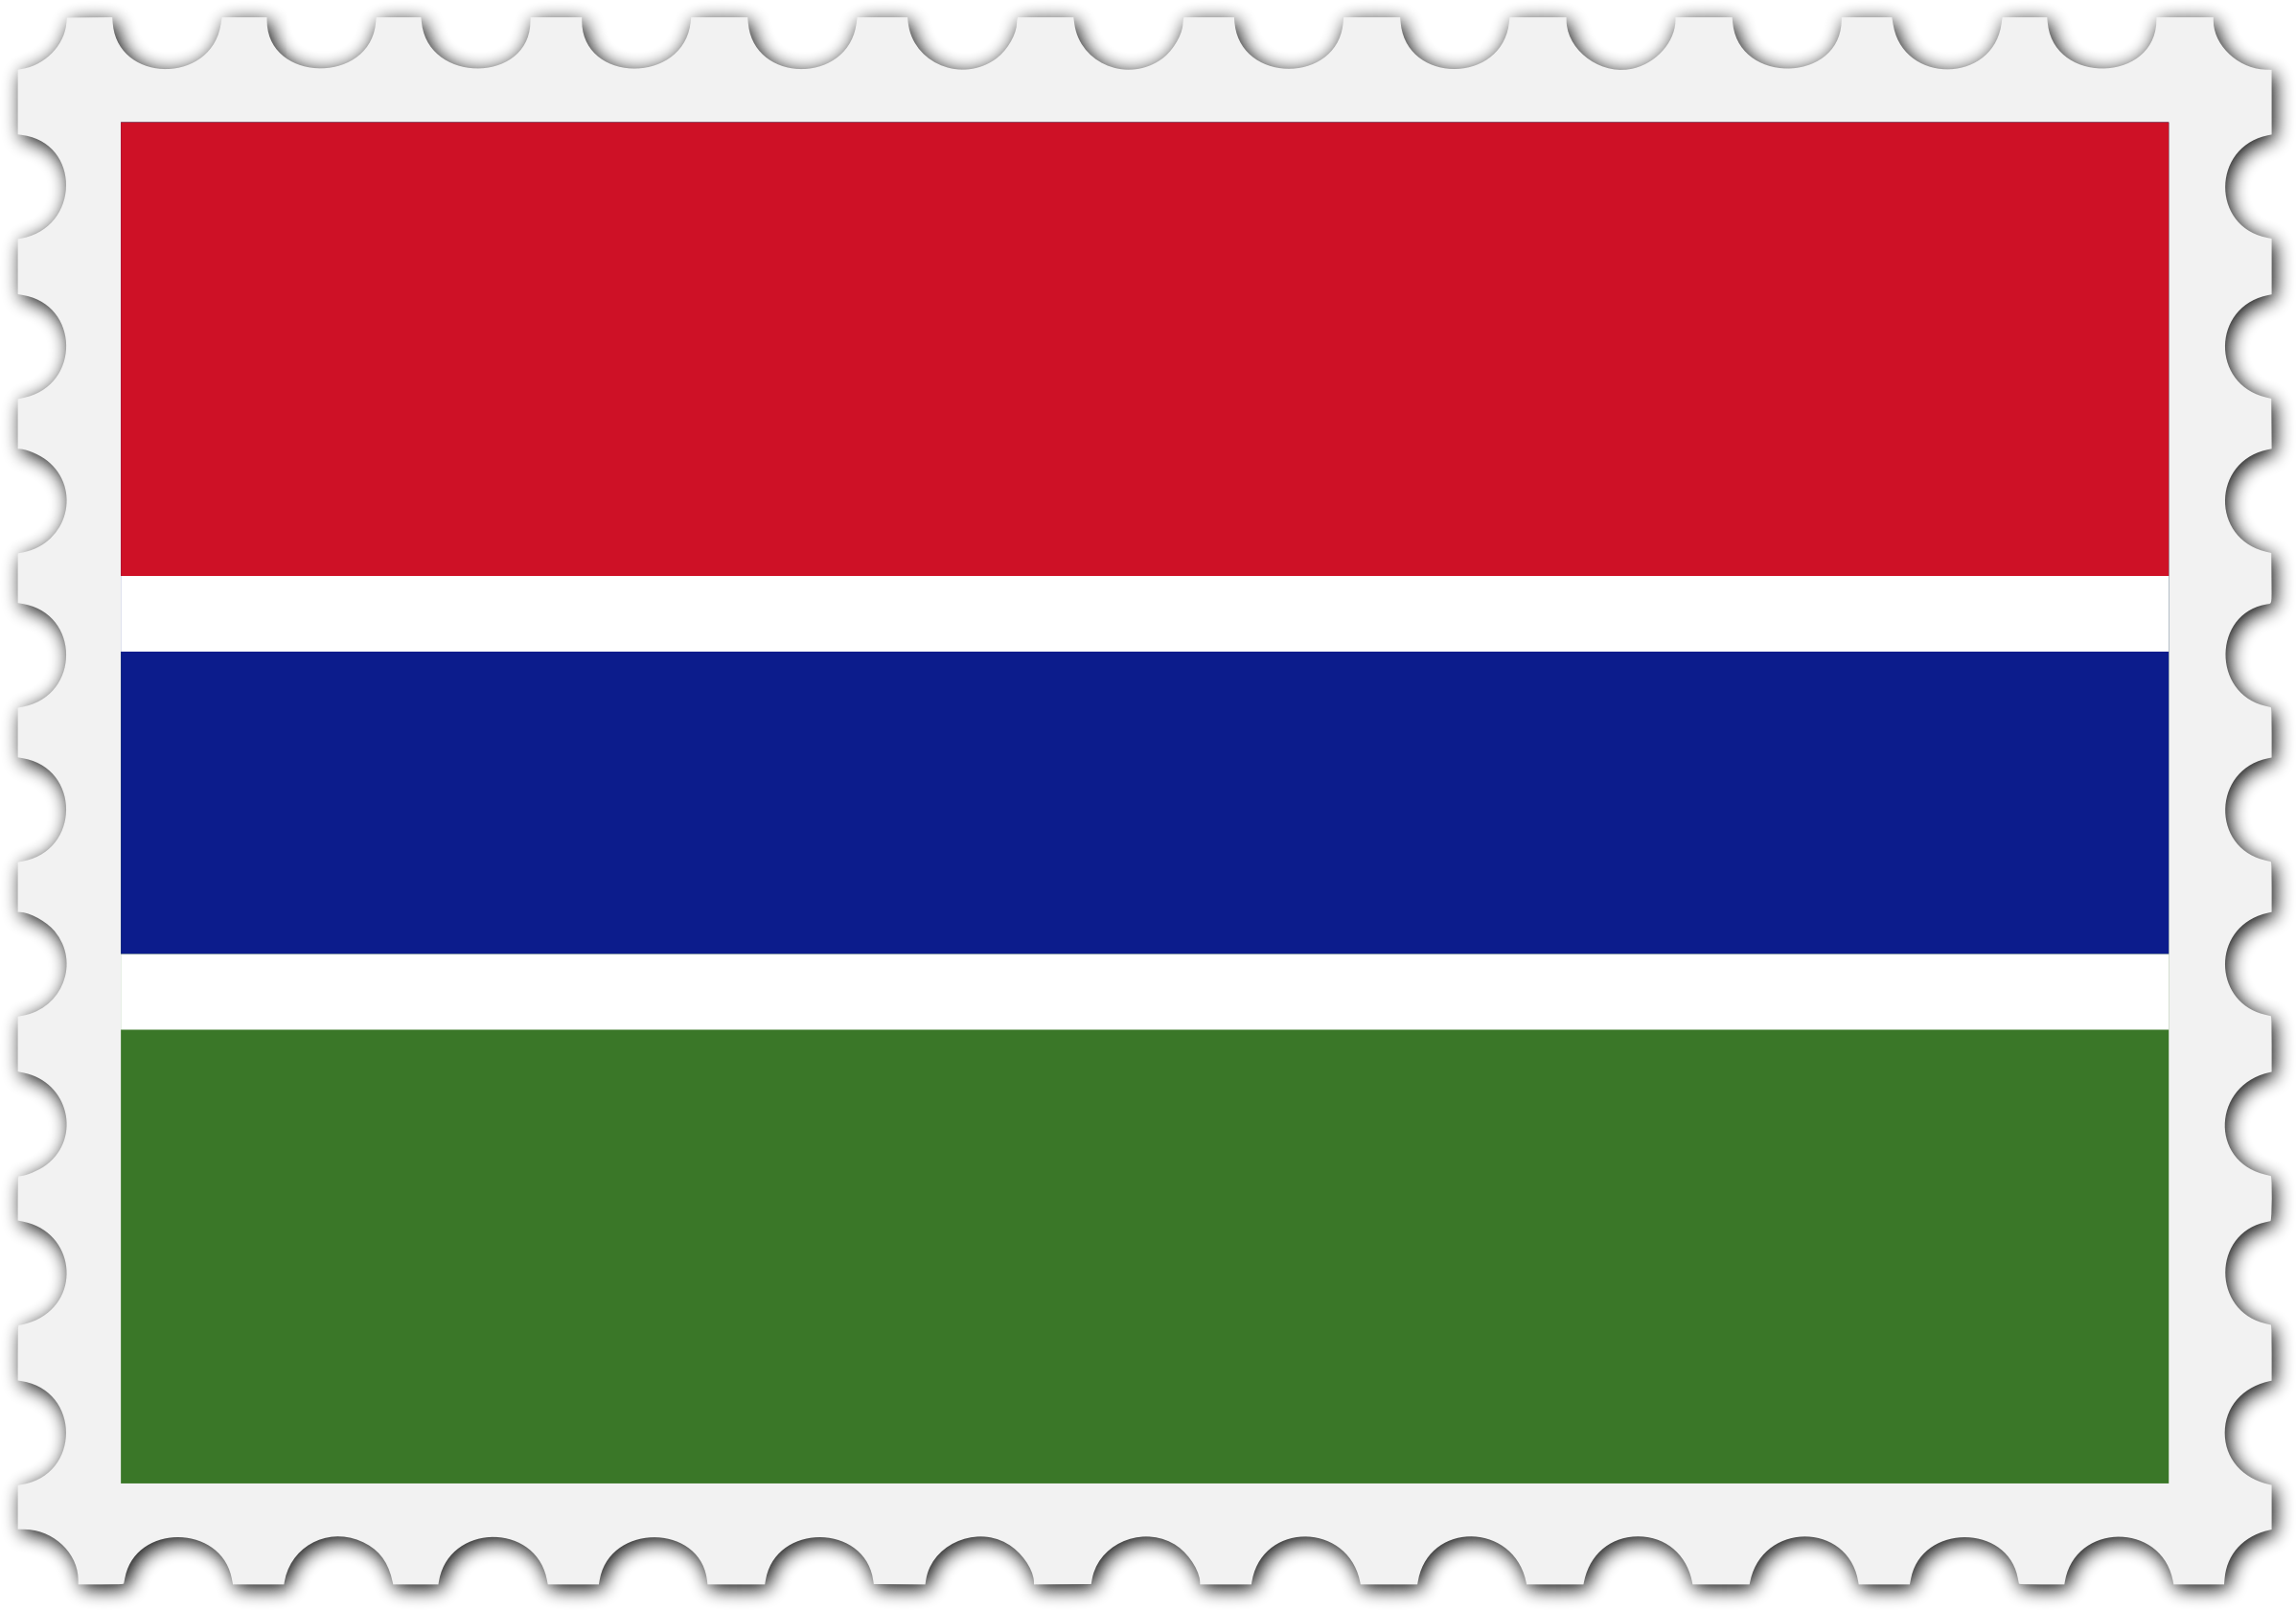 Gambia flag stamp by Firkin